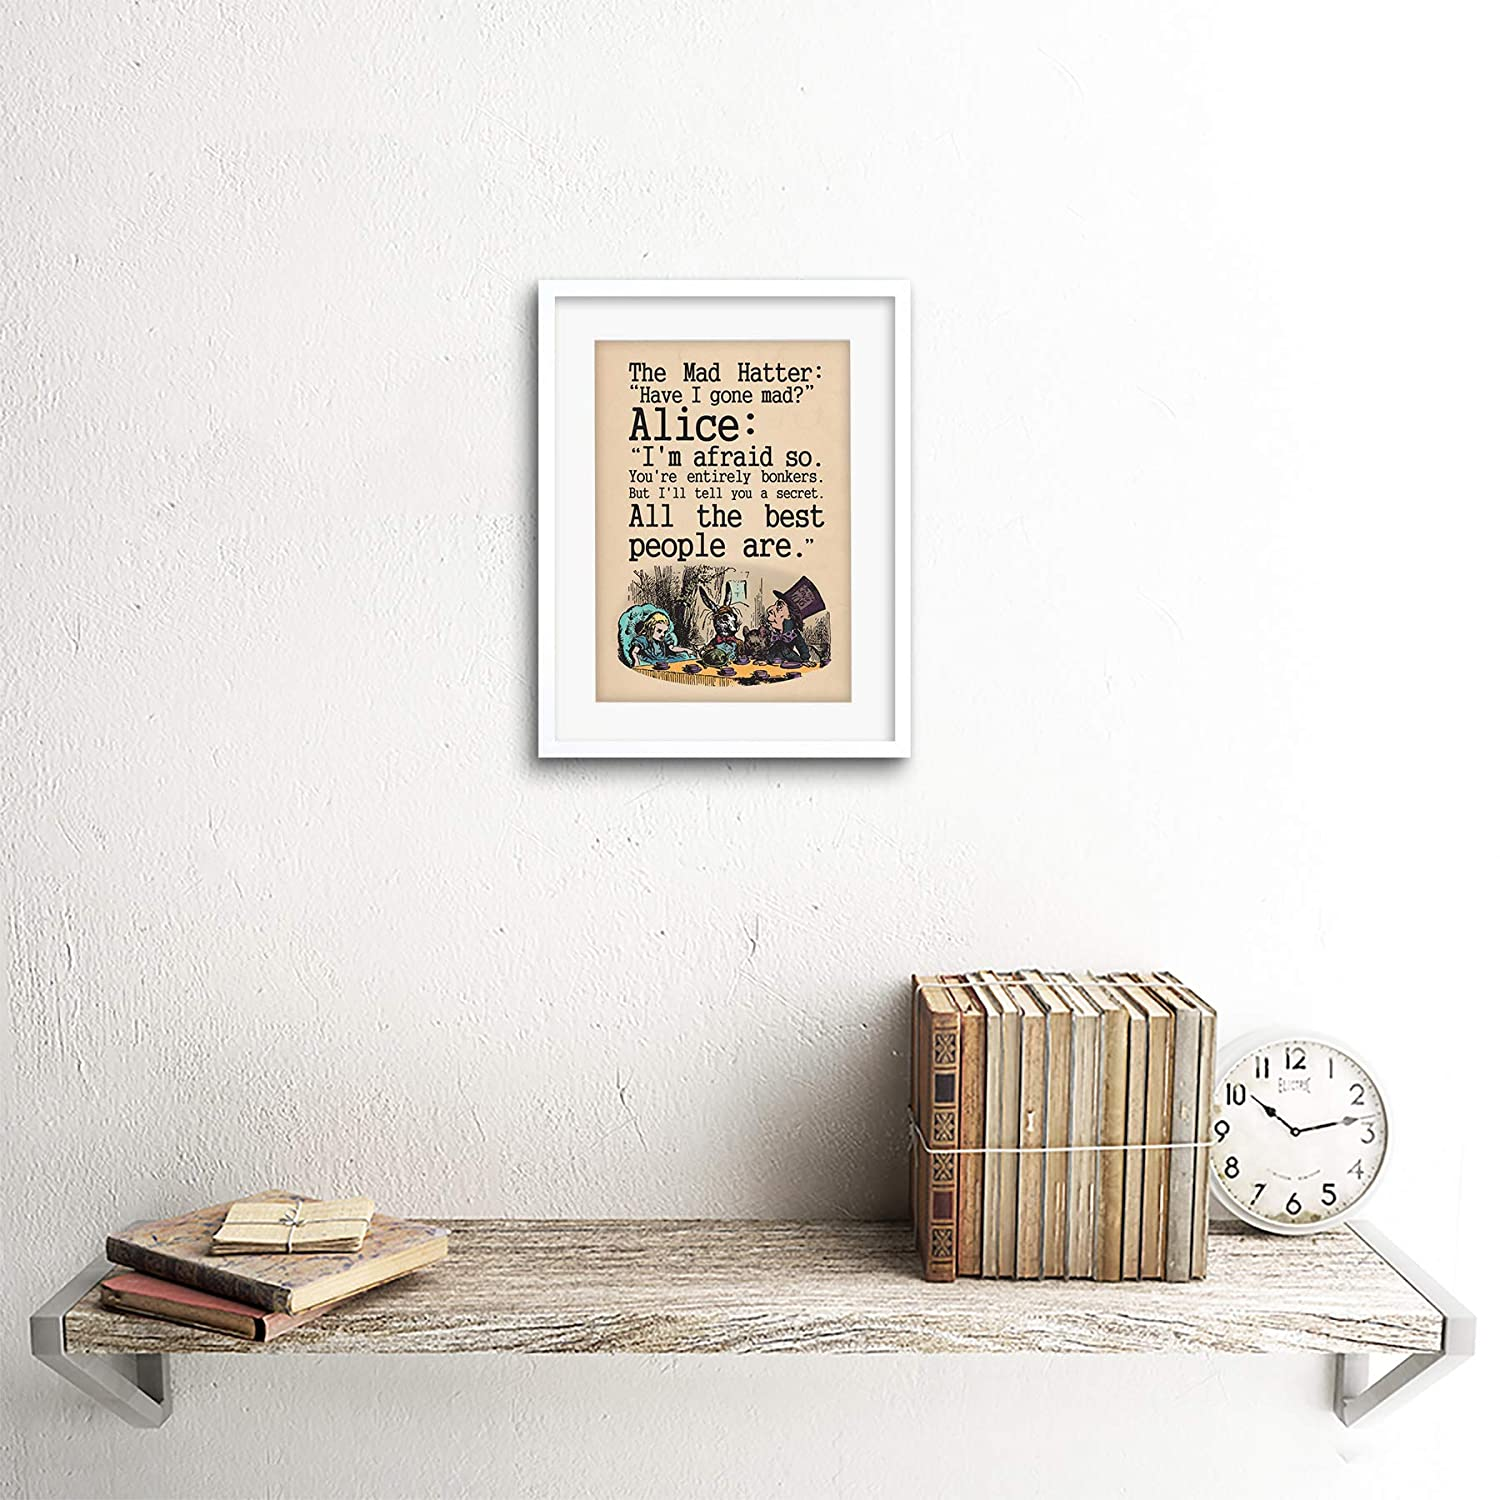 QUOTE CARROLL BOOK ALICE WONDERLAND MAD HATTER TEA PARTY FRAMED ...